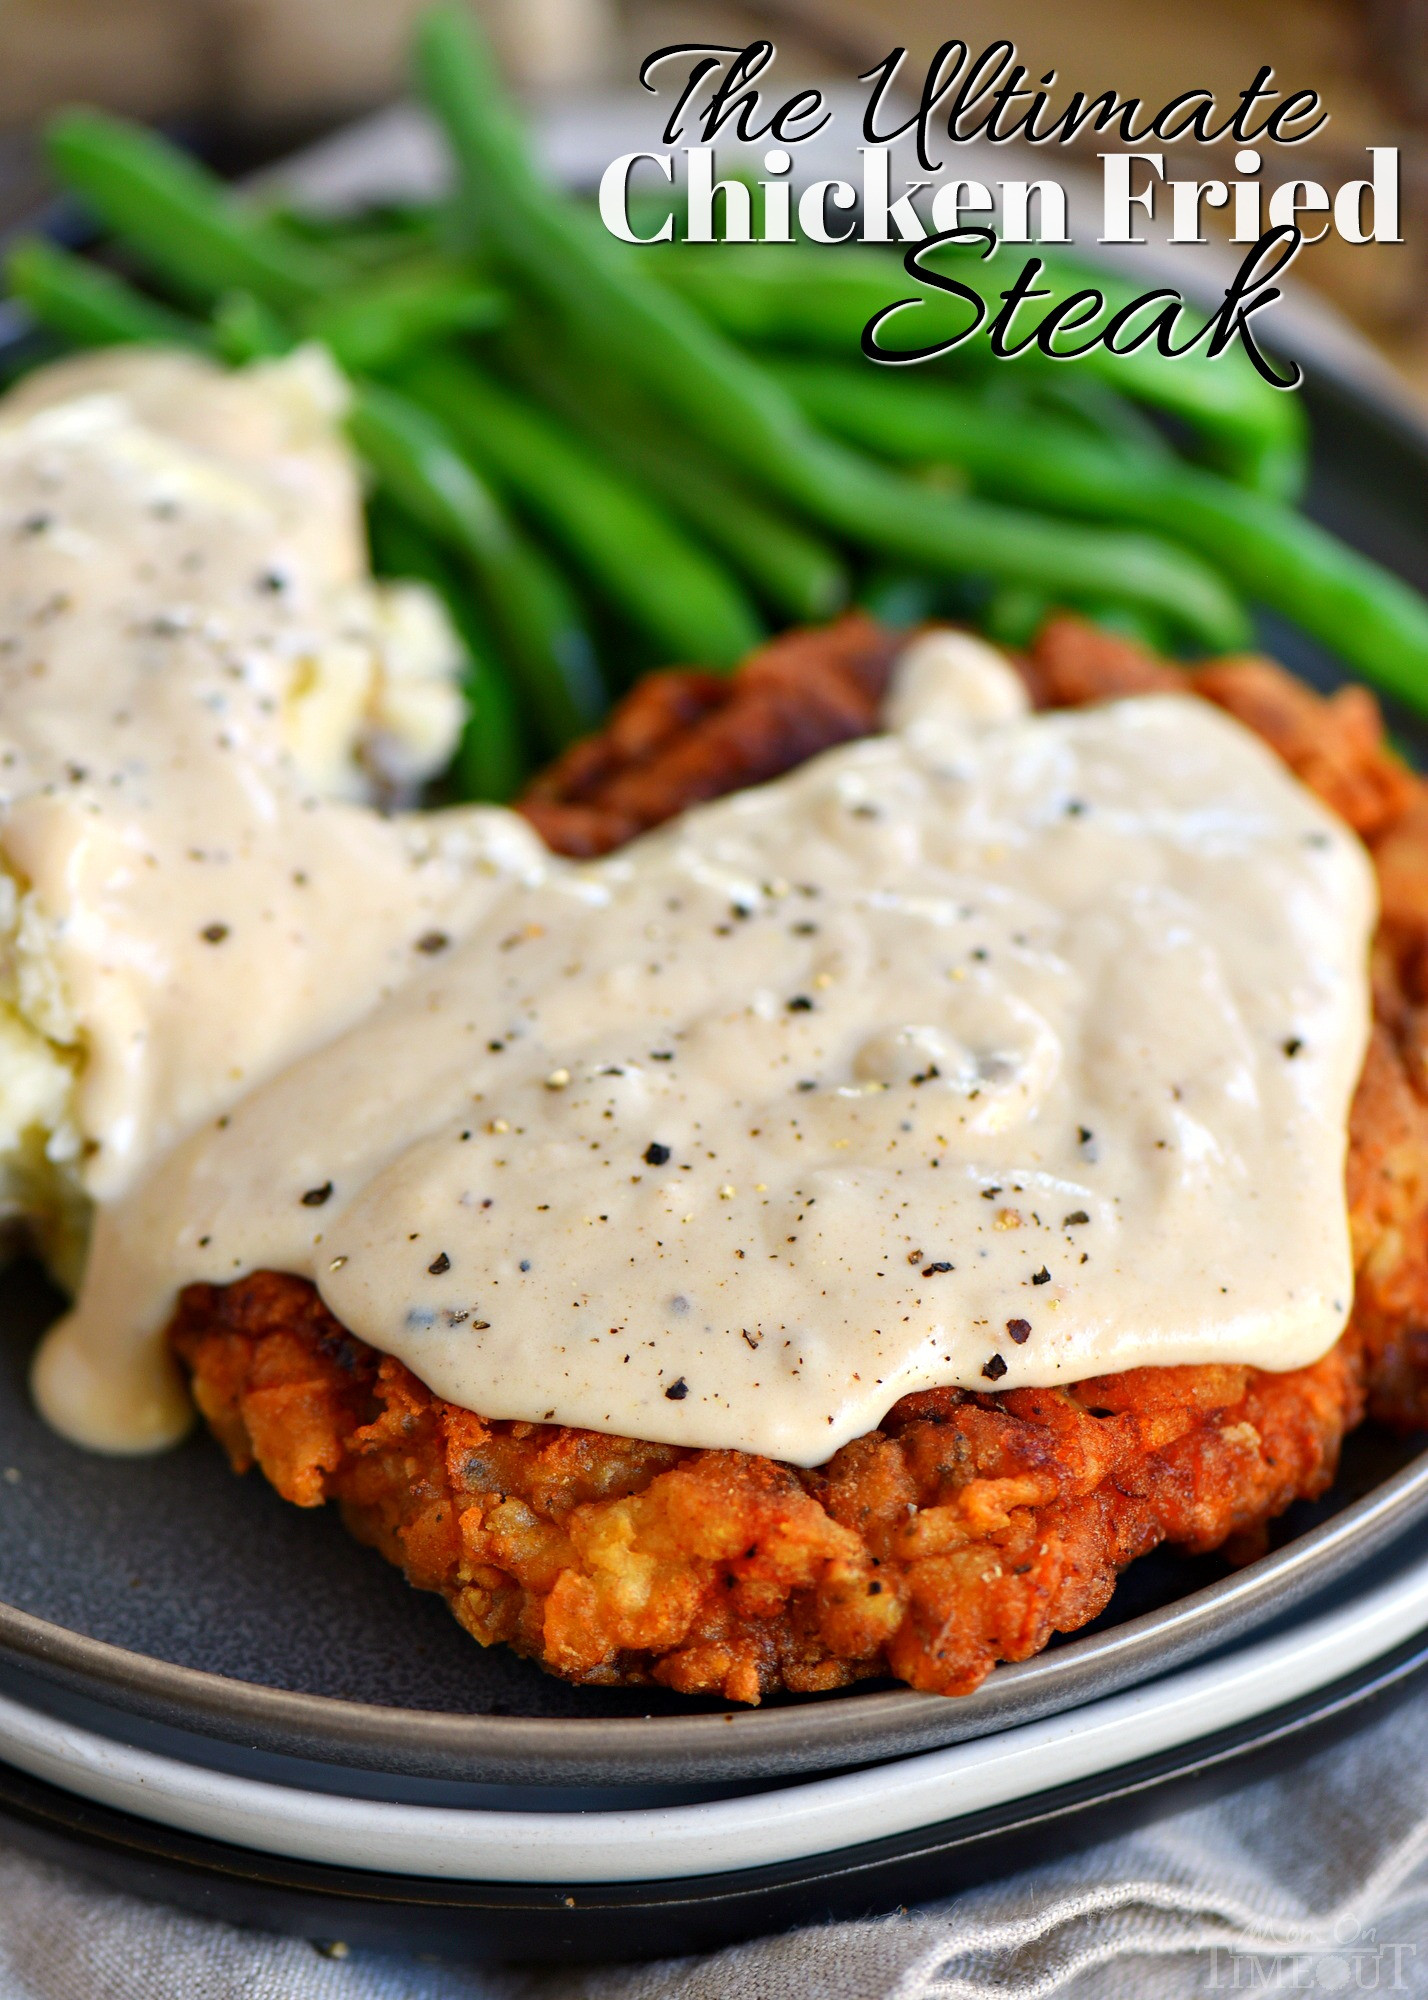 Chicken Fried Steak Recipes  The Ultimate Chicken Fried Steak Recipe with Gravy Mom